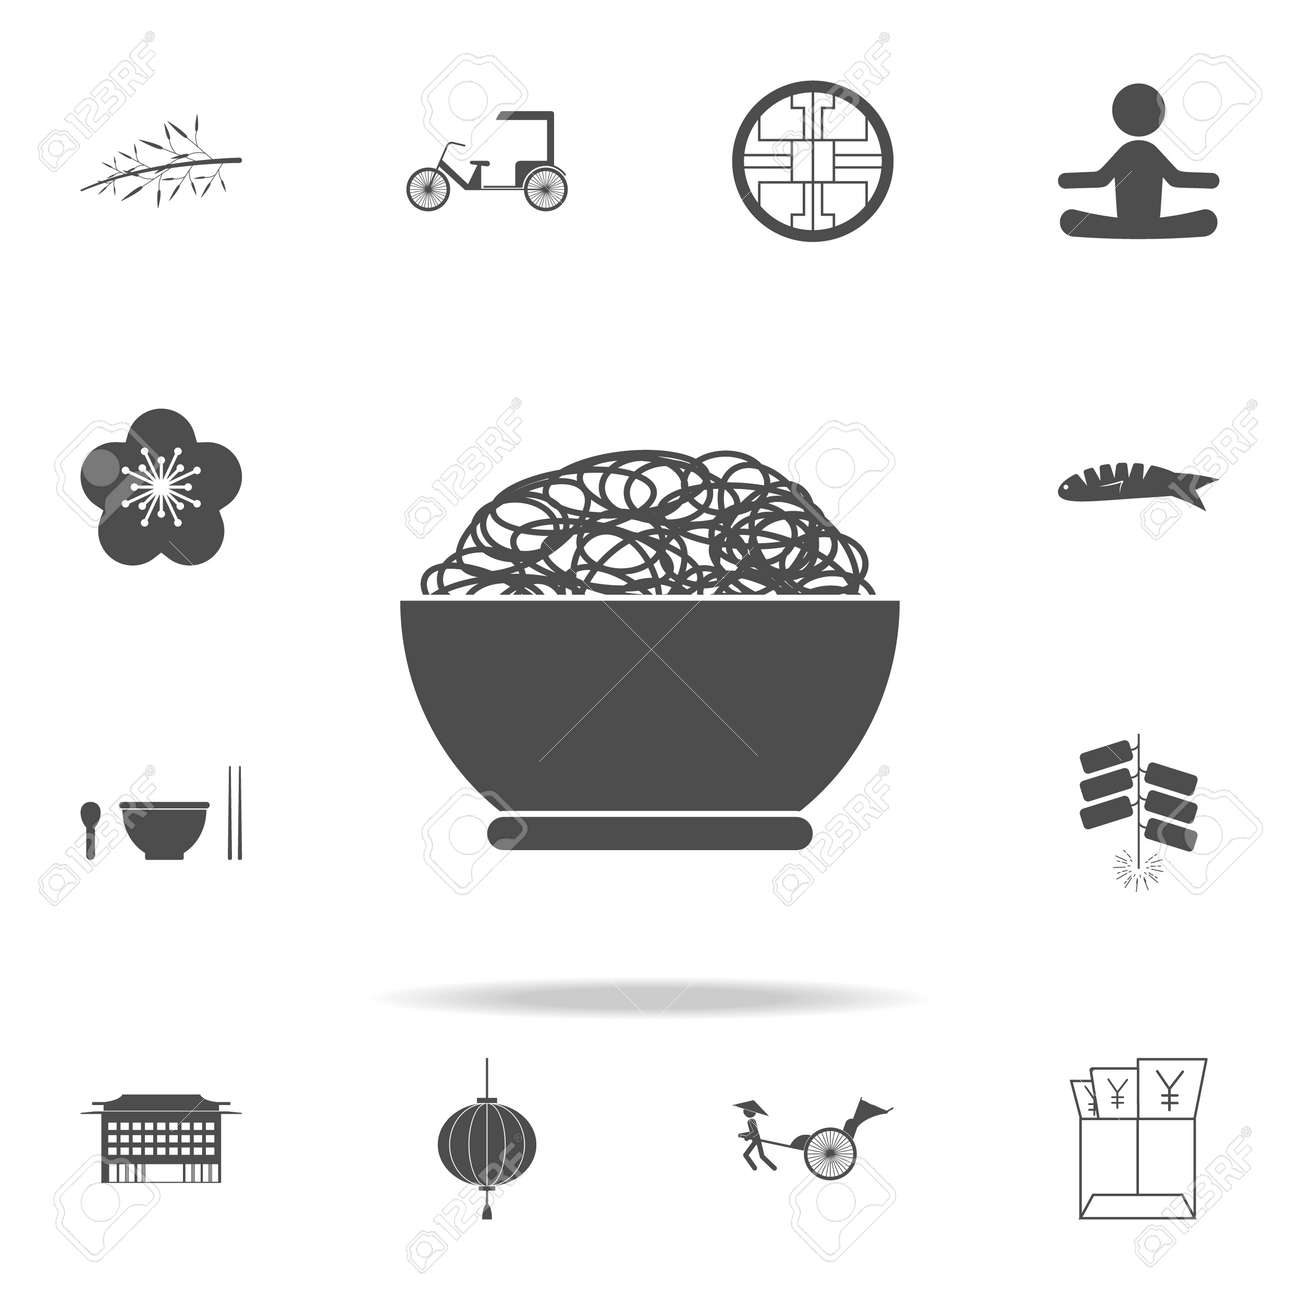 Noodles Icon Set Of Chinese Culture Icons Web Icons Premium